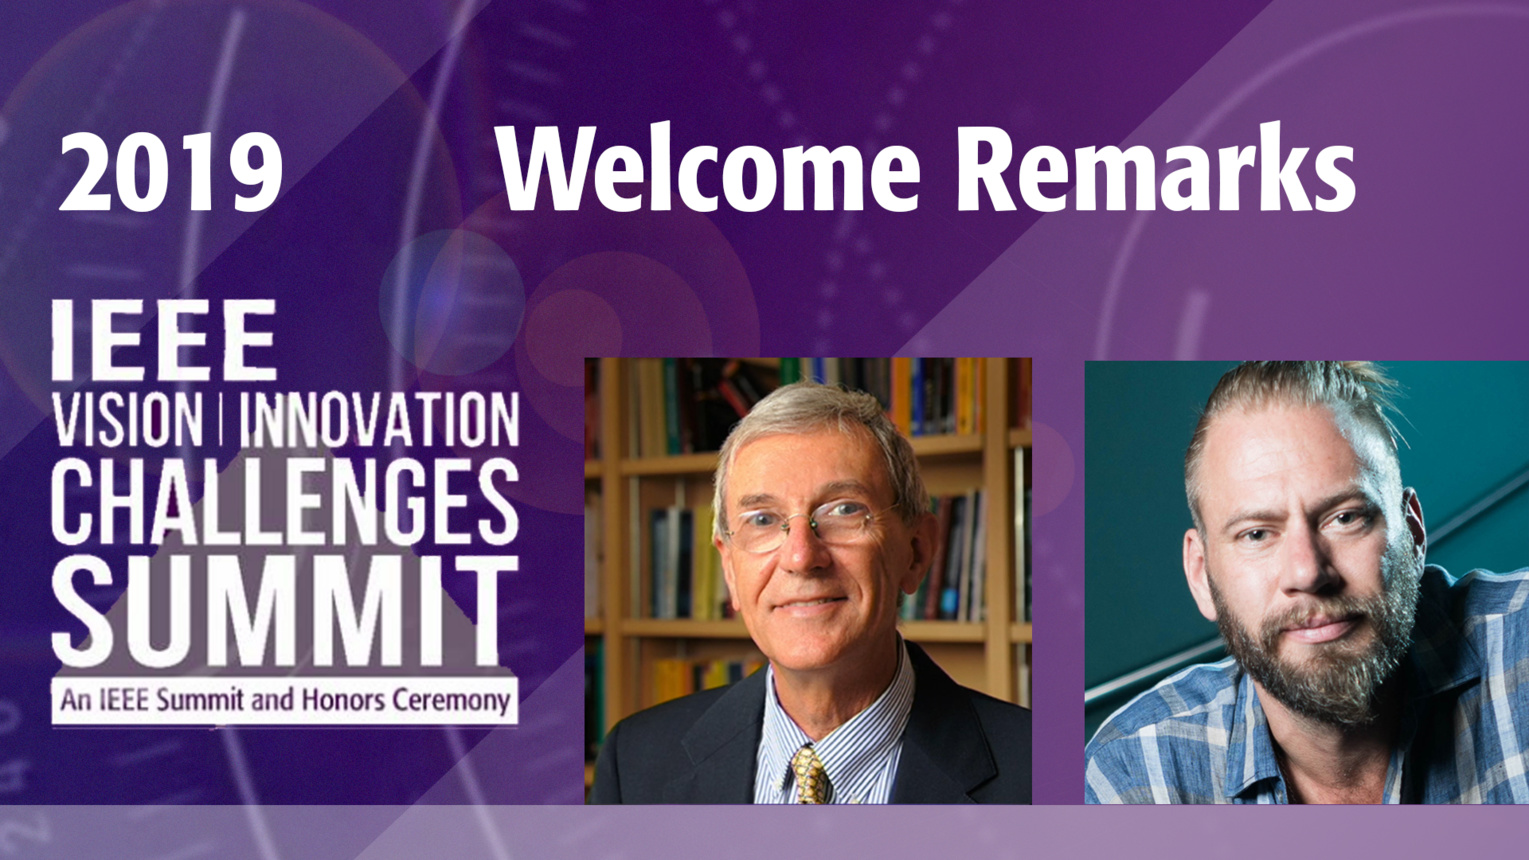 Welcome Remarks - Jose Moura & Mike North - VIC Summit 2019